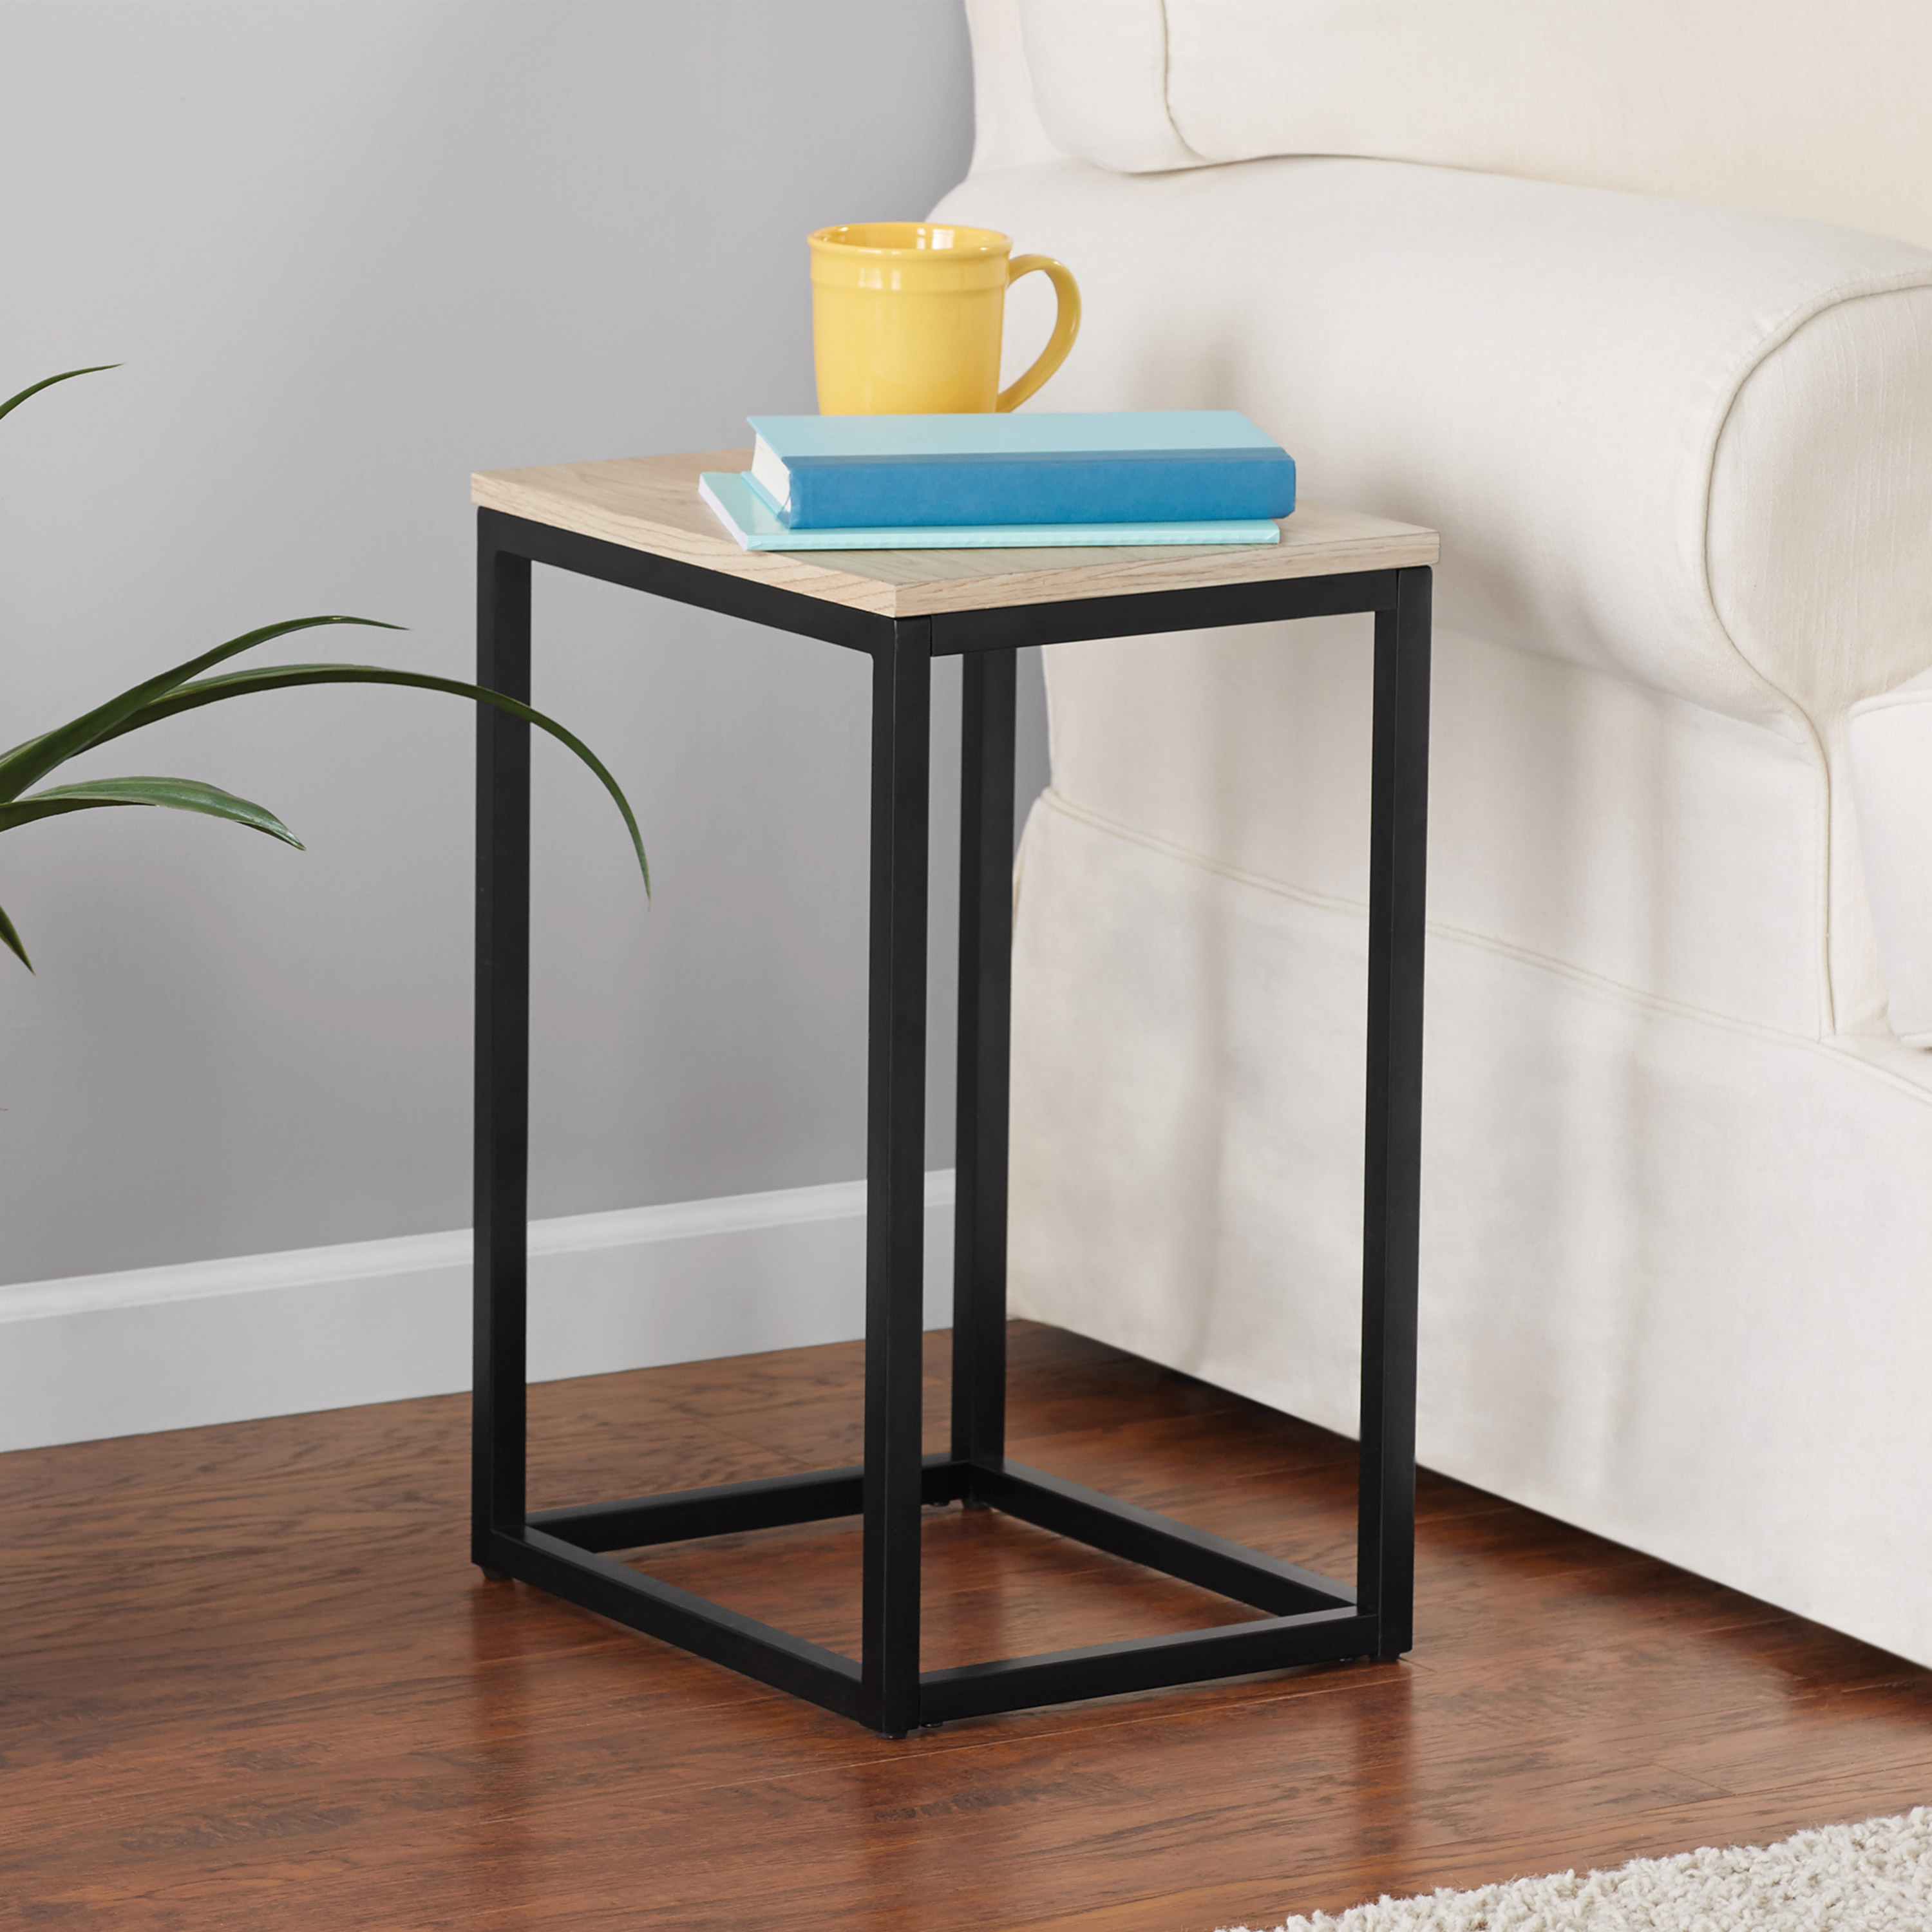 mainstays end table black marble accent round side silver small dining and chairs sofa for space living room decorative furniture legs art deco lamps solid oak tables target